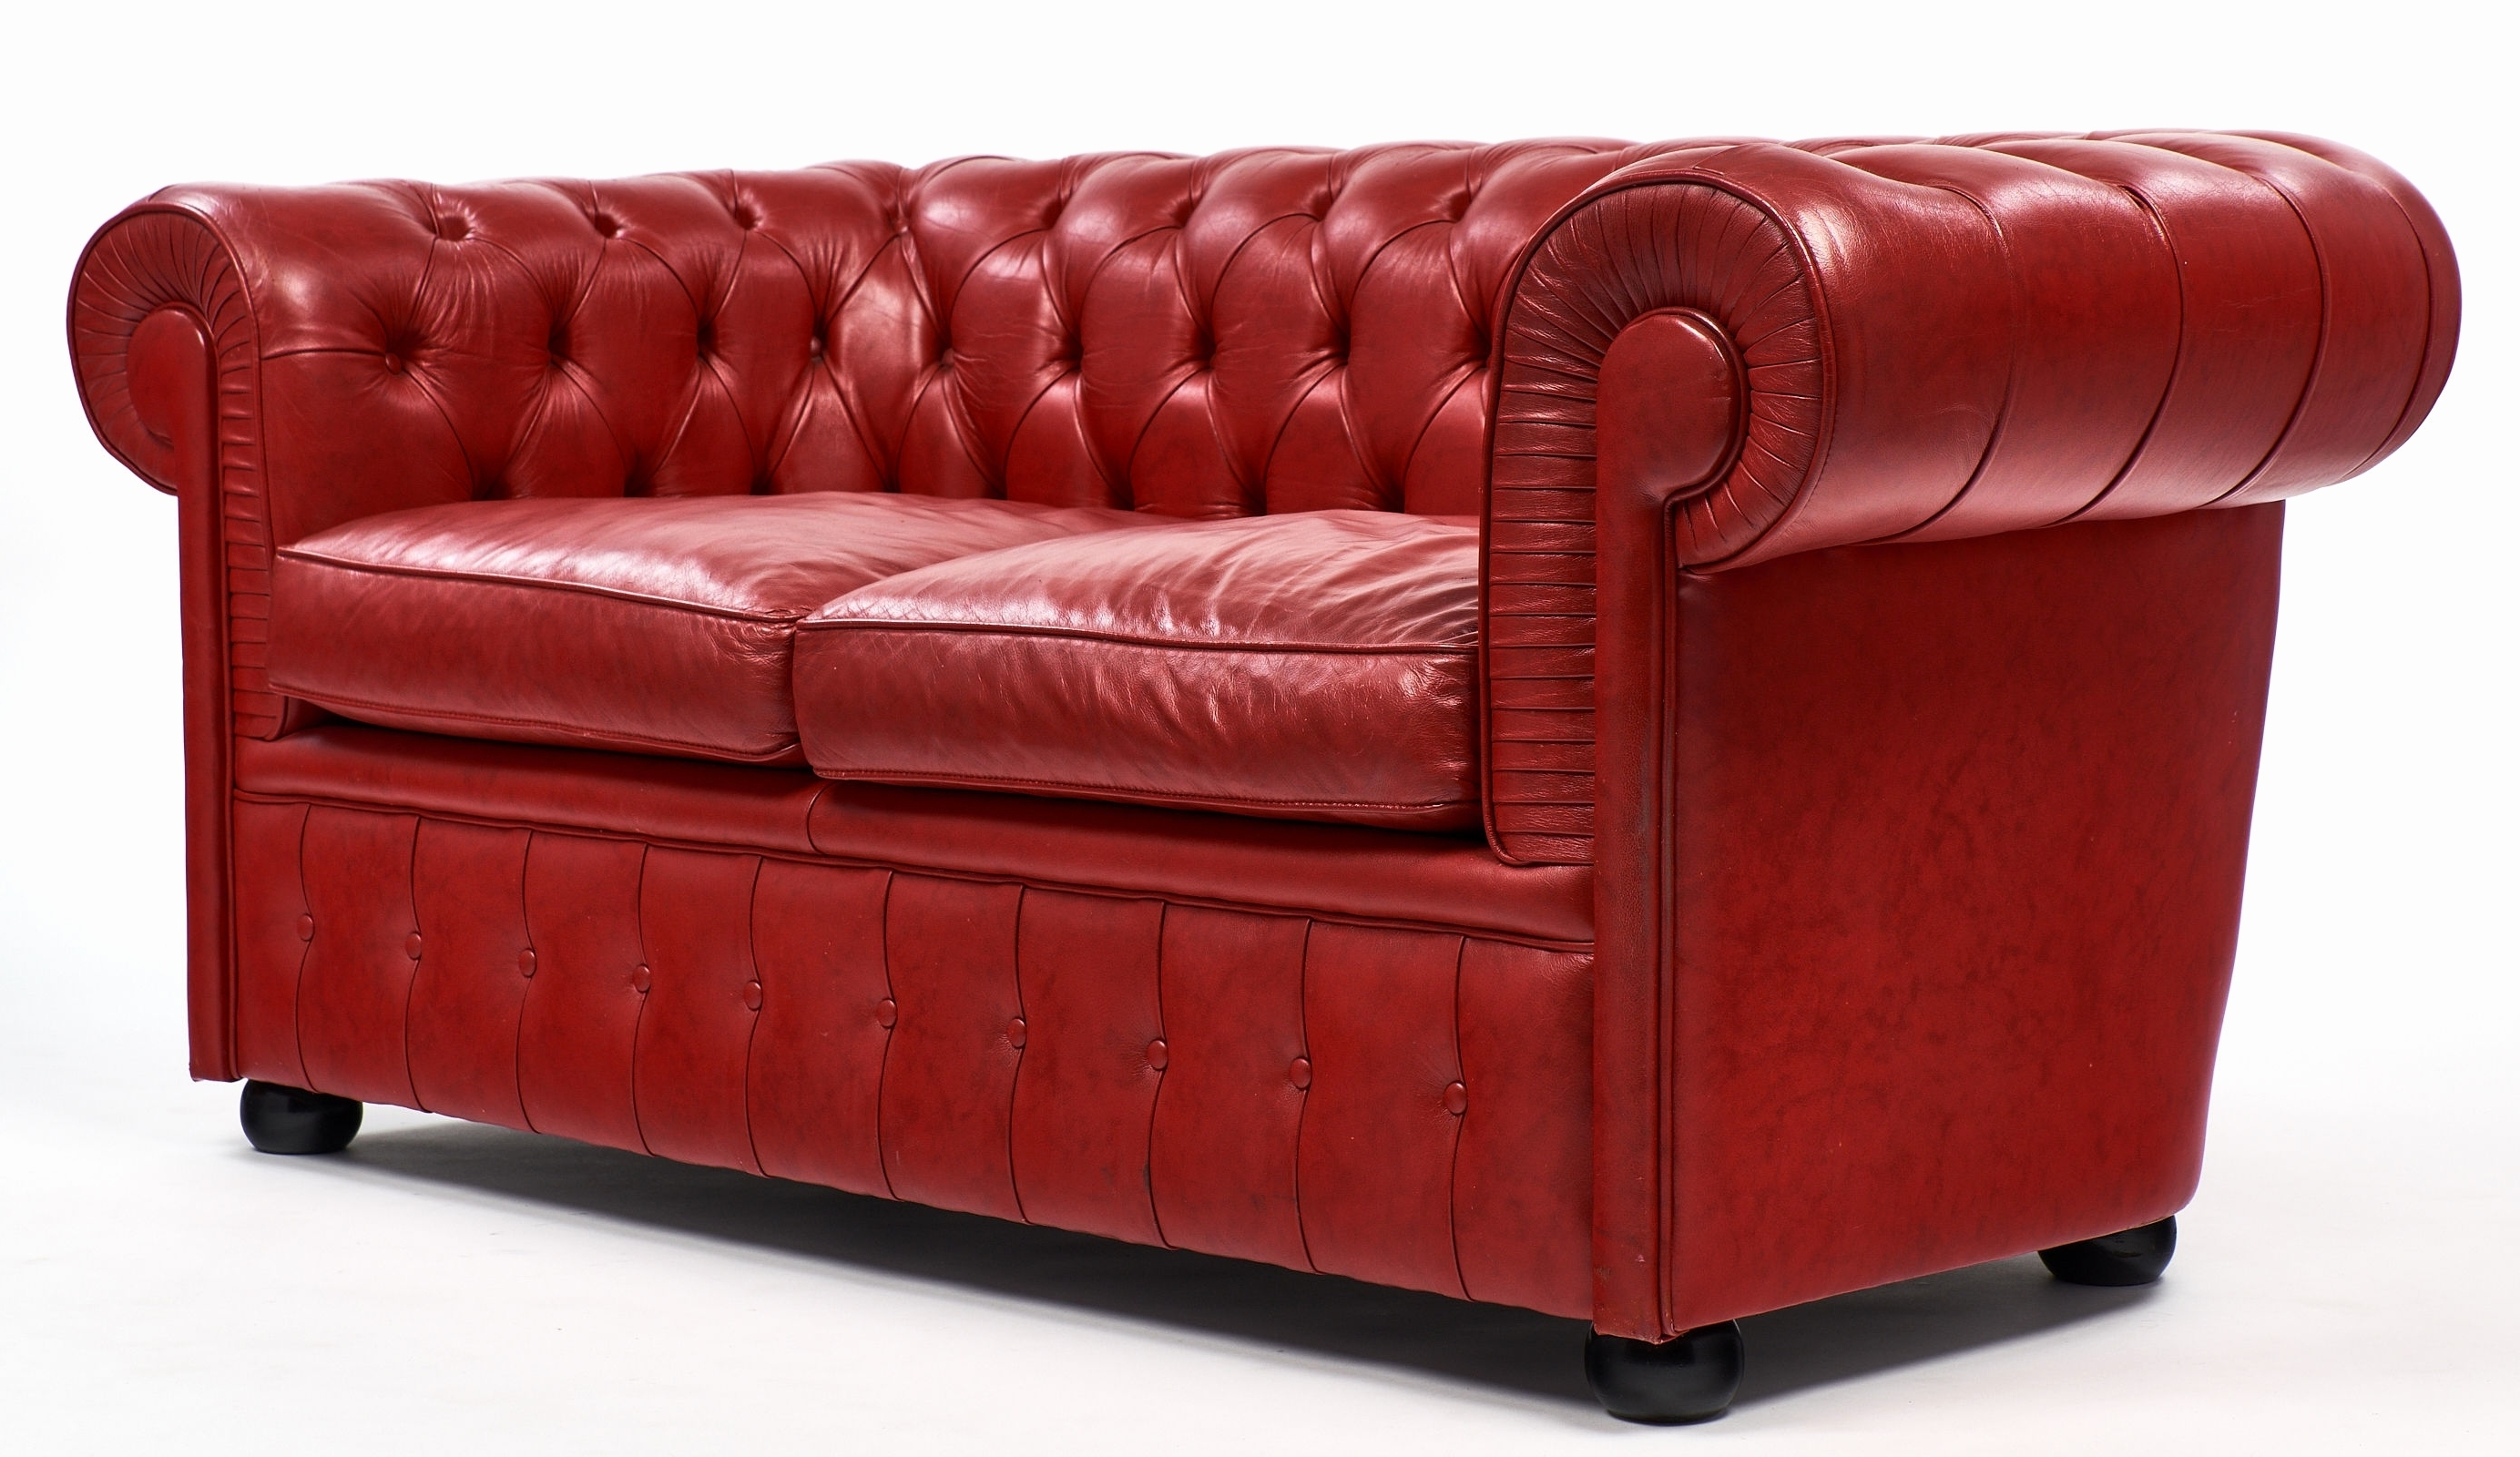 Favorite Vintage Chesterfield Sofas With Regard To Inspirational Red Chesterfield Sofa 2018 – Couches And Sofas Ideas (View 2 of 20)